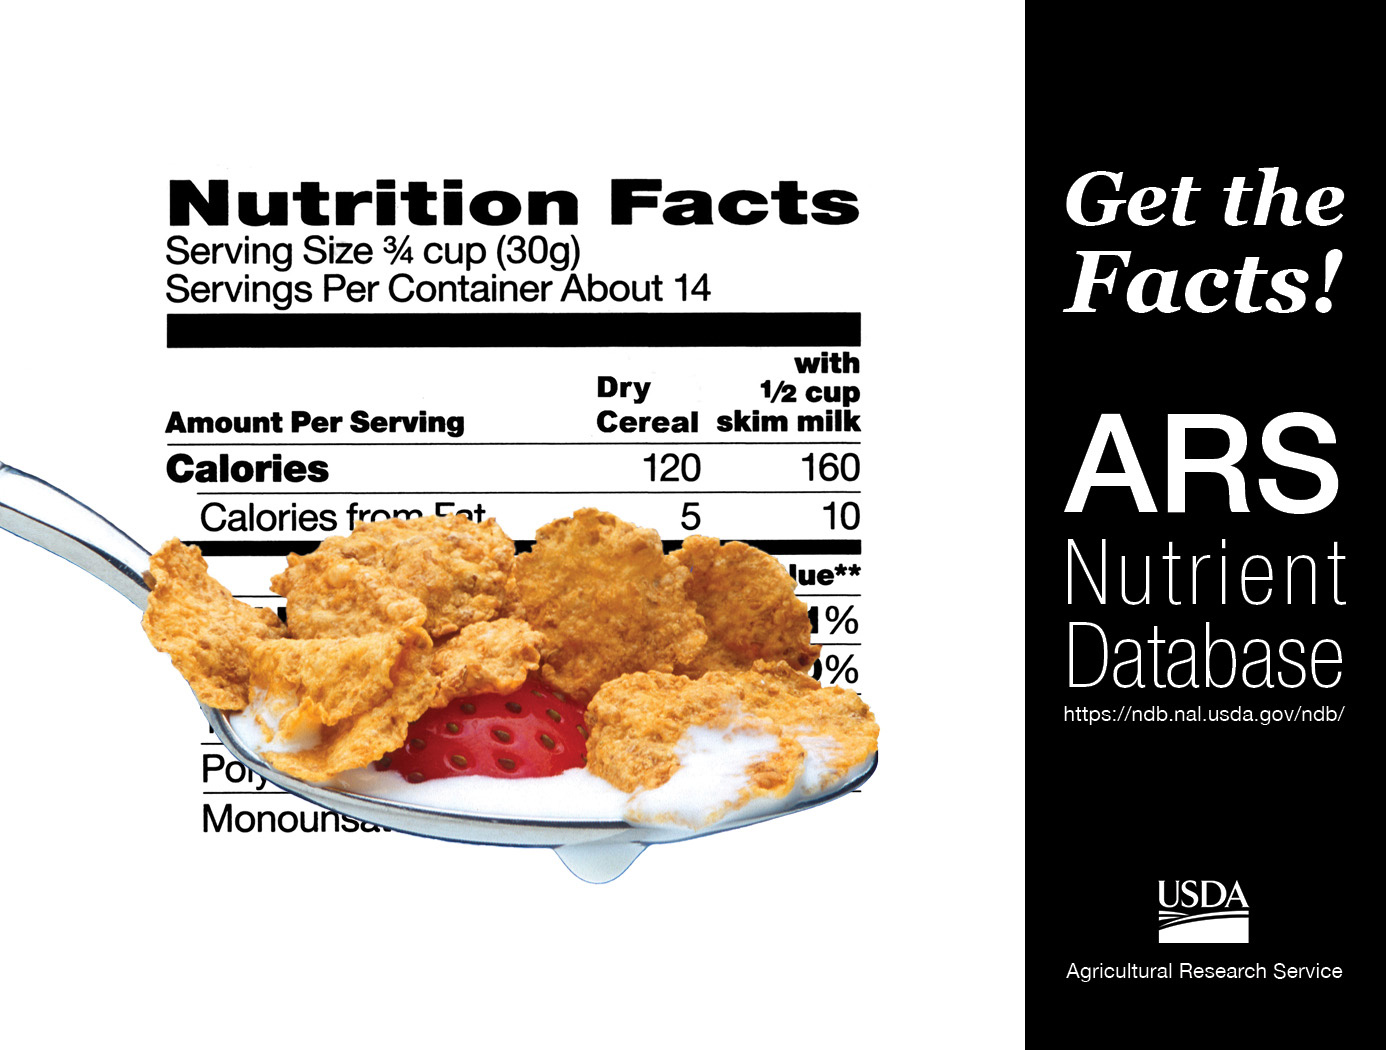 Get Nutrition Facts